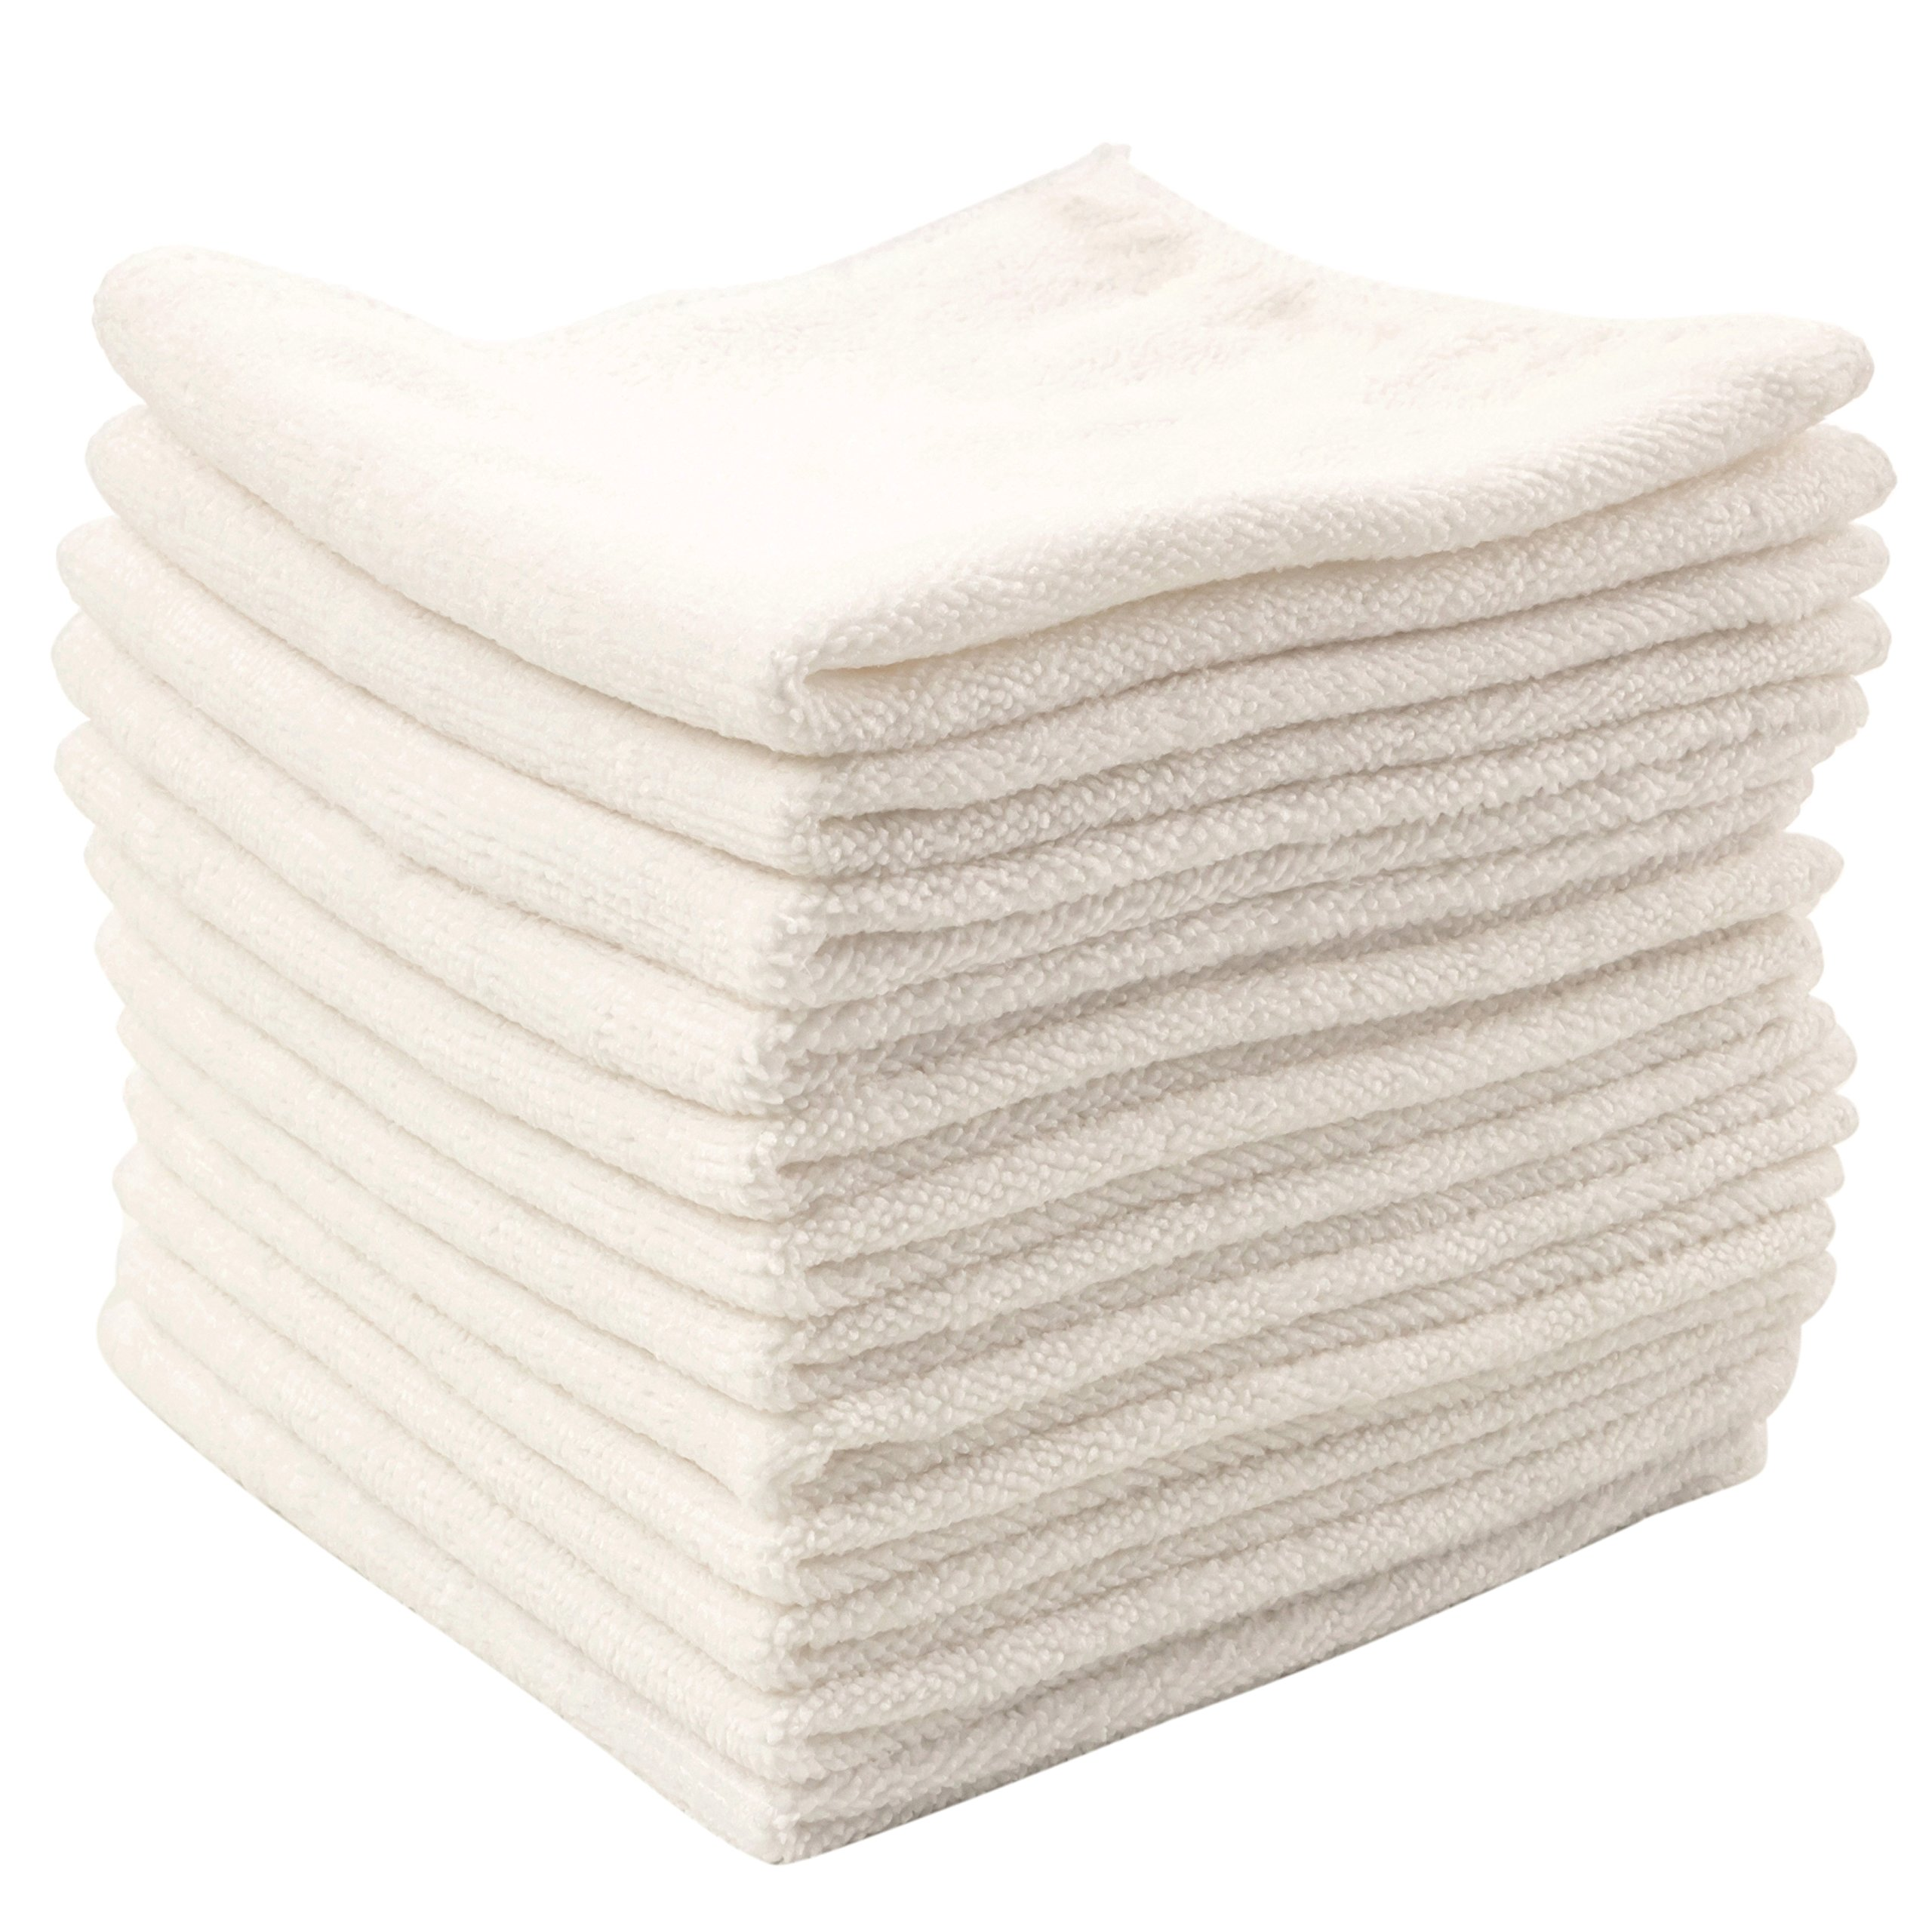 Dry Rite's Best Magic Microfiber Cloth - Professional Series Cleaning Towels for Fine Auto Finishes, Interior, Chrome, Kitchen, Bath, TV, Glass- Non Scratching, Streak Free, Use Wet or Dry - 12'' x 12''